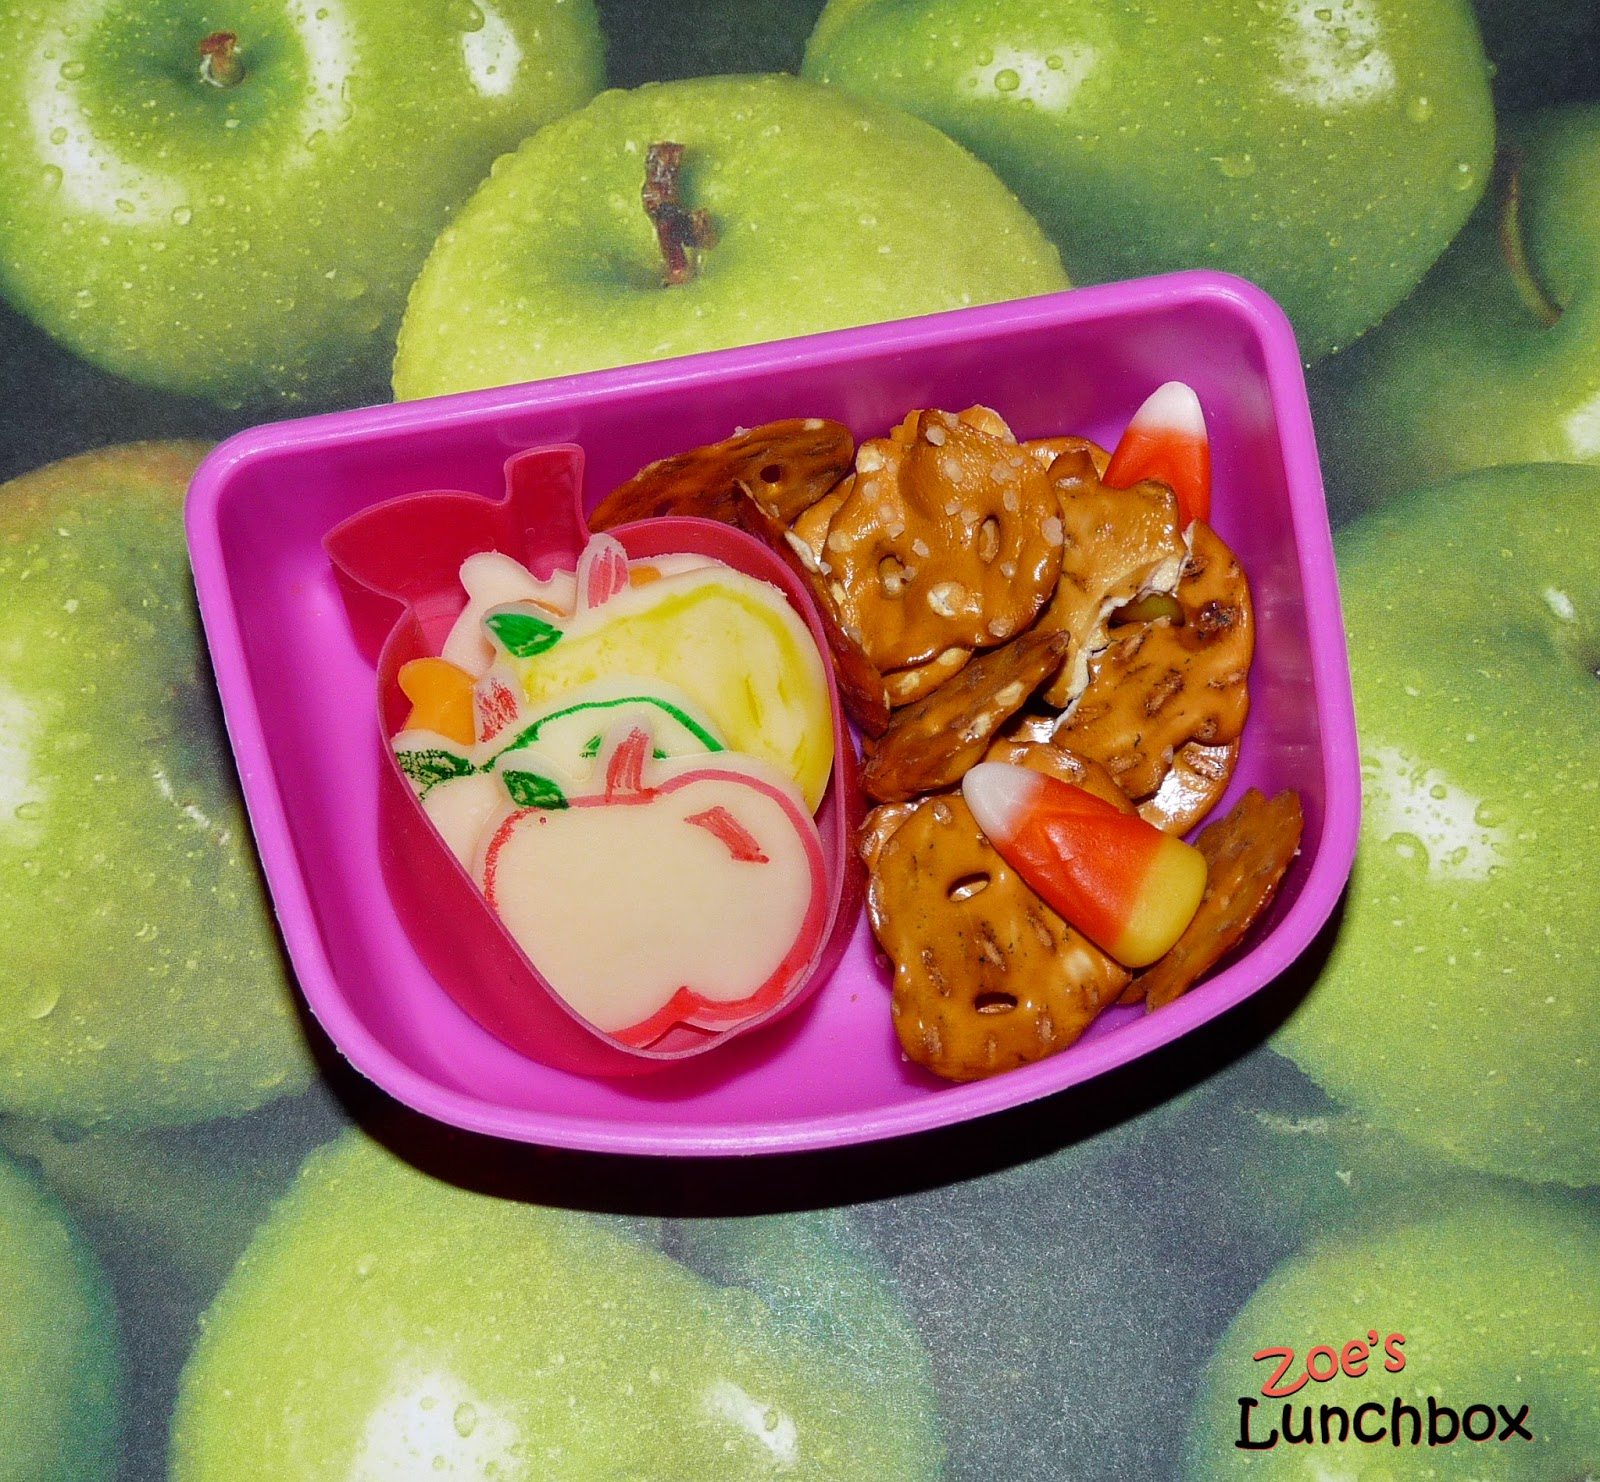 kindergarten snack box